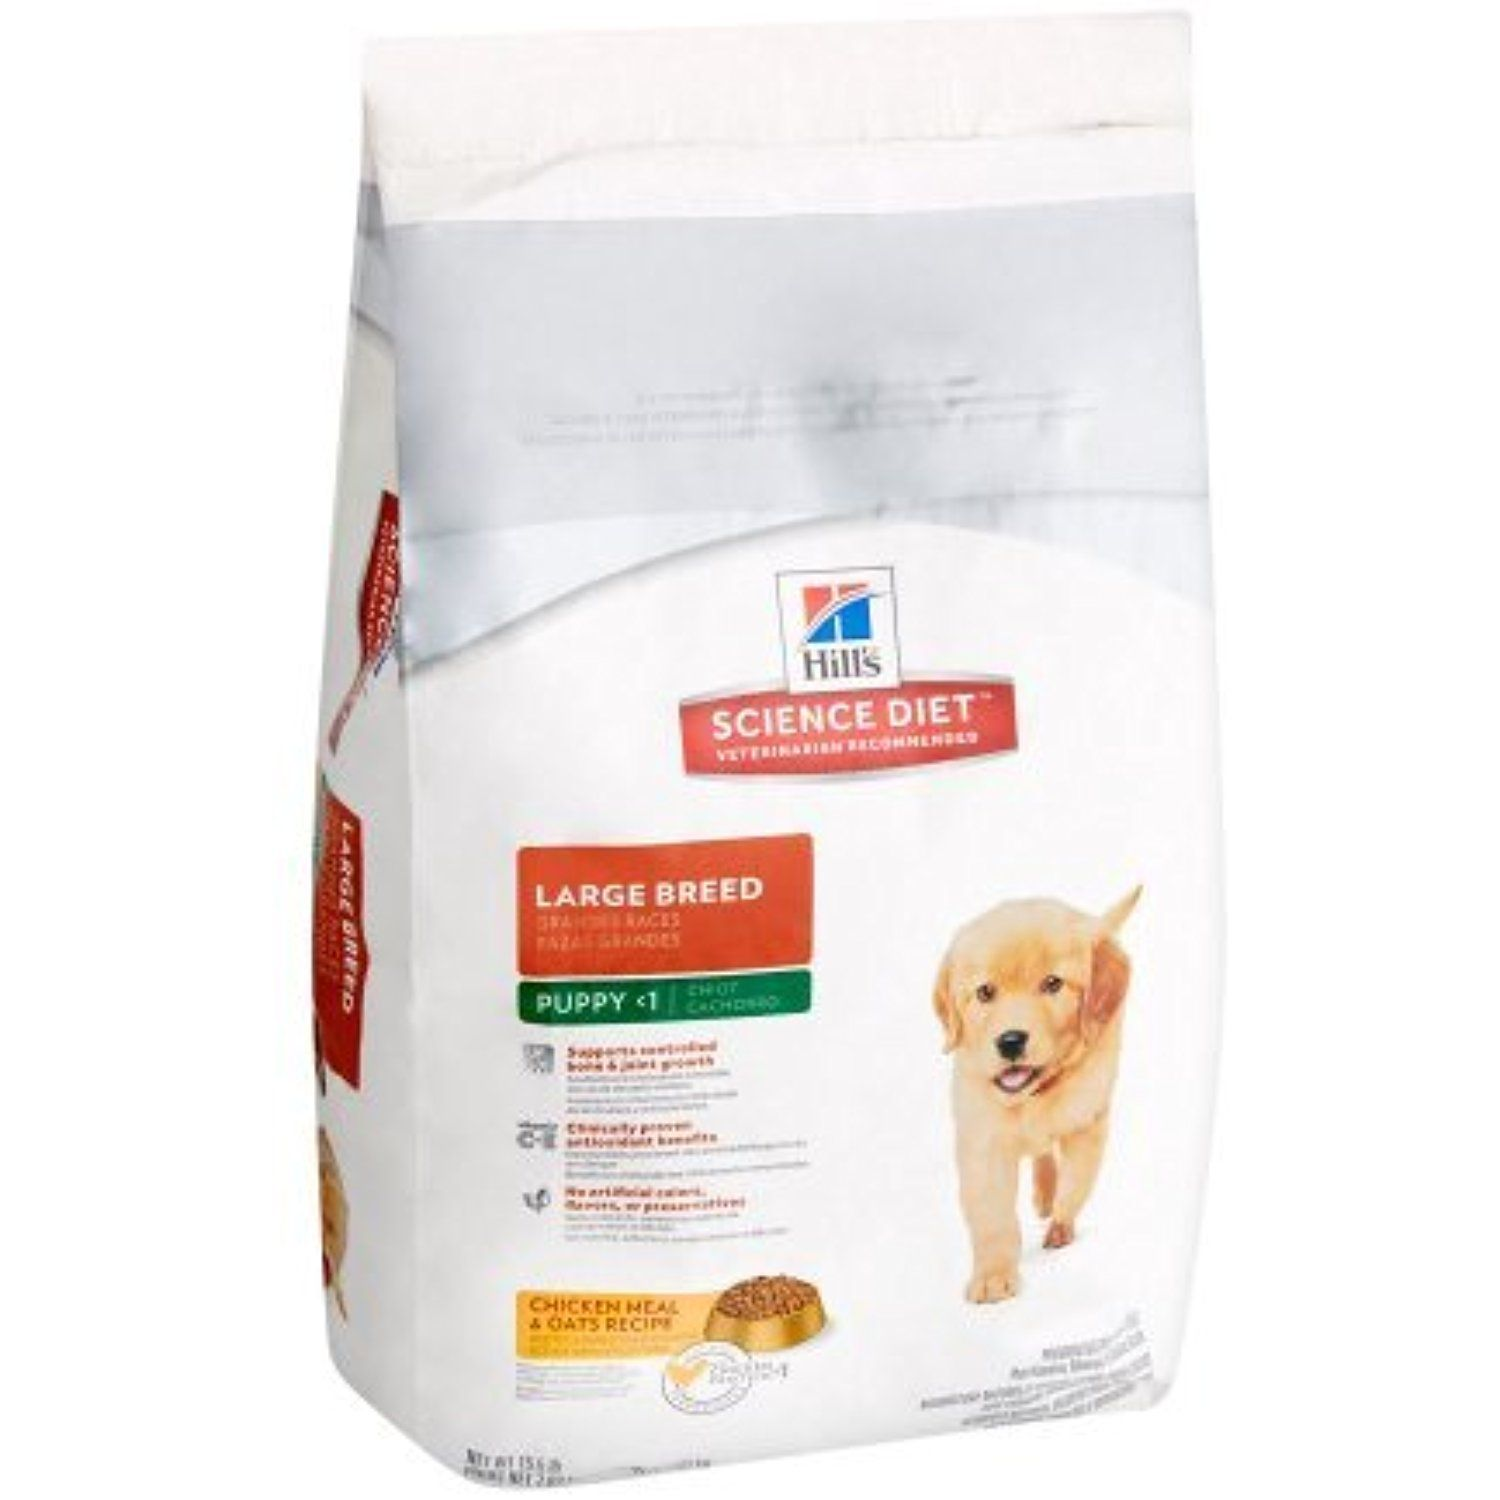 Hill S Science Diet Large Breed Puppy 1 Chicken Meal Dogs Dogs Hills Science Diet Science Diet Dog Food Recipes